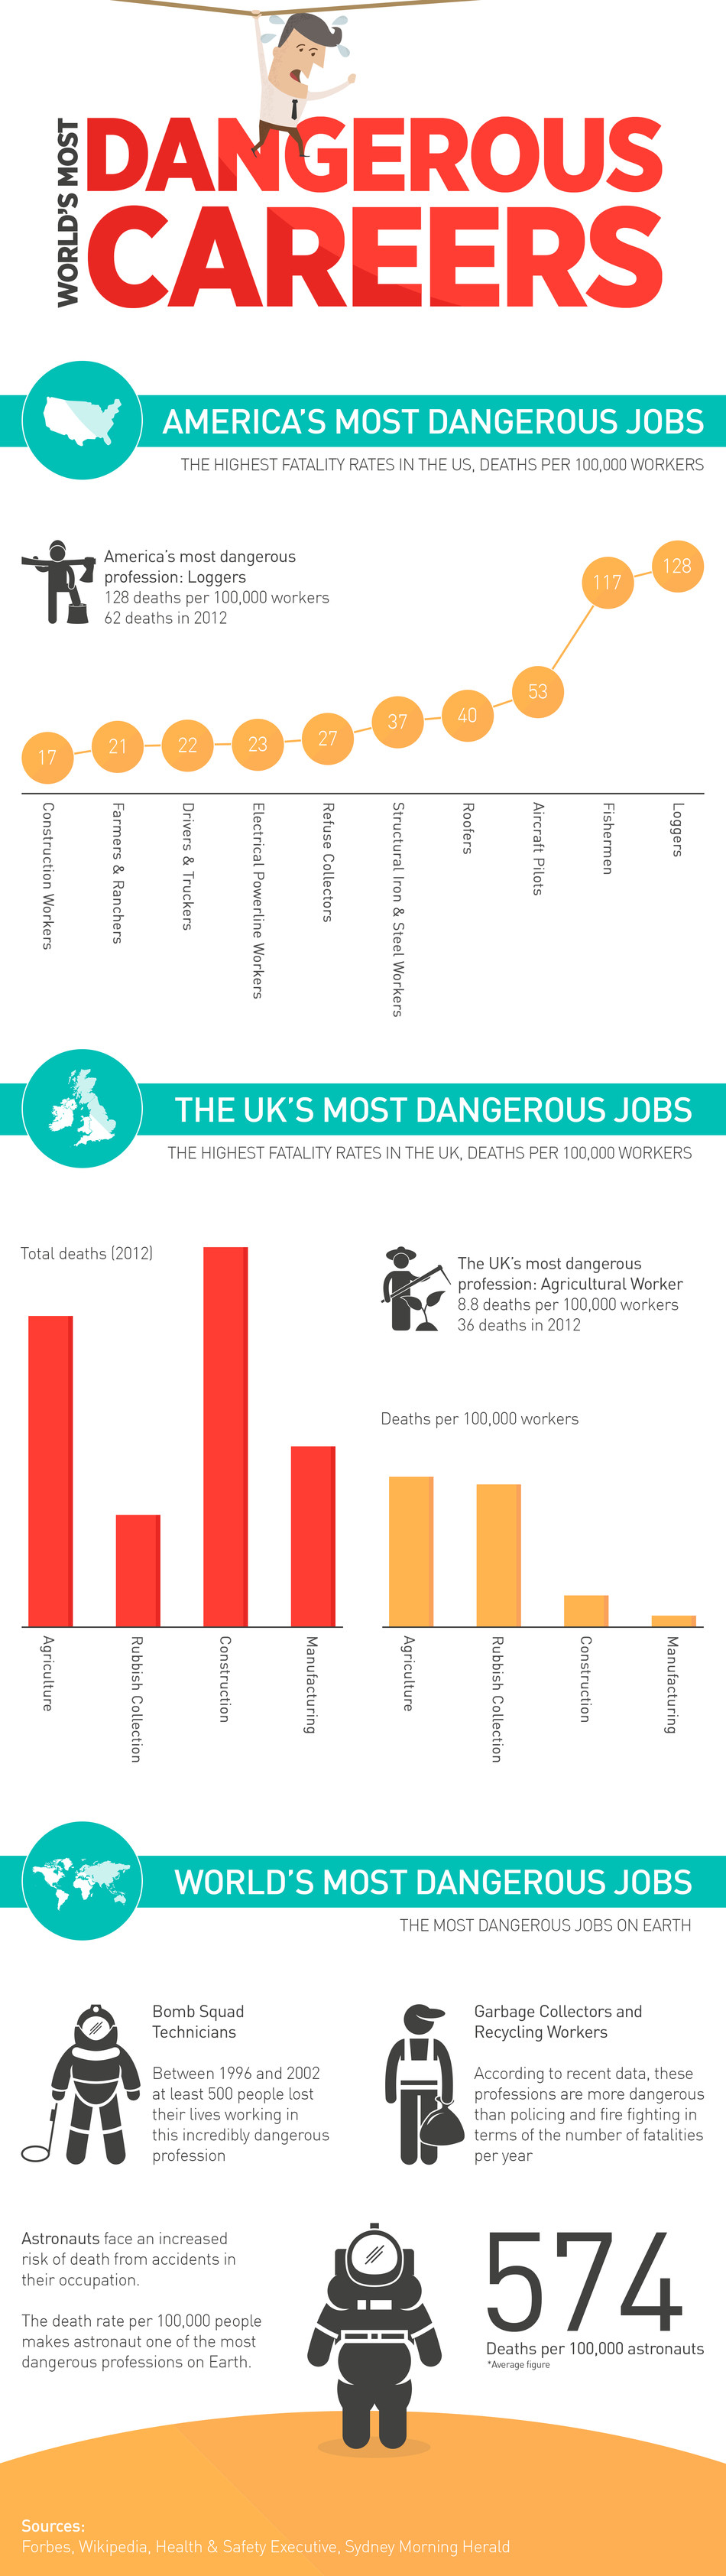 The World's Most Dangerous Careers